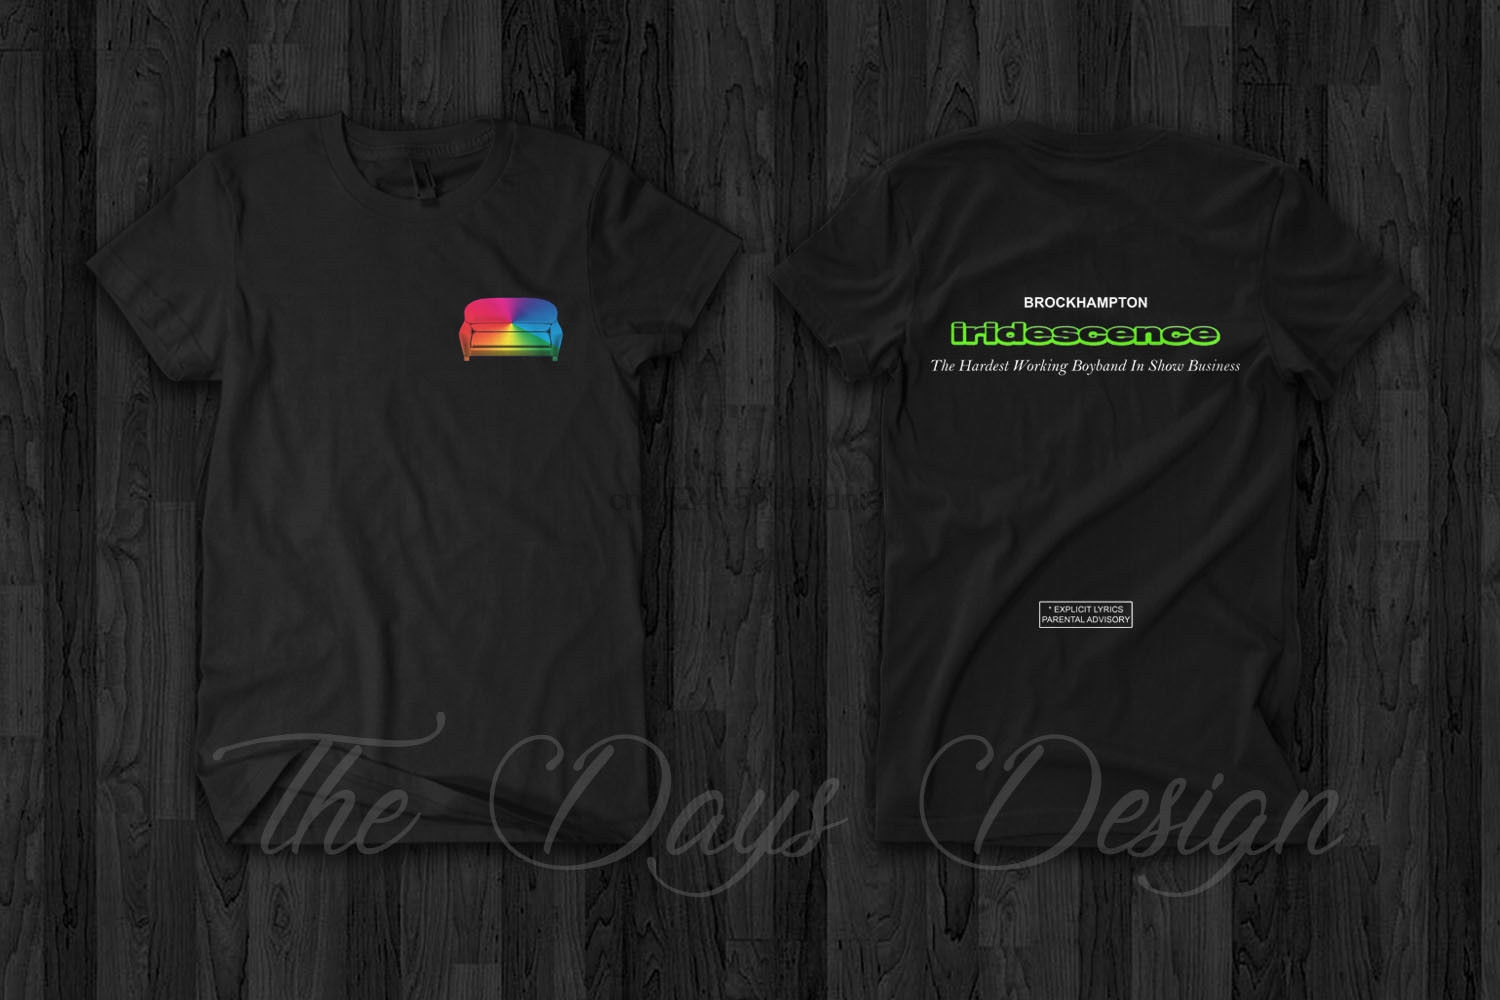 Fabulous Us 12 99 Brockhampton Iridescence Couch Logo Ill Be There Tour 2018 T Shirt Saturation In T Shirts From Mens Clothing On Aliexpress Caraccident5 Cool Chair Designs And Ideas Caraccident5Info